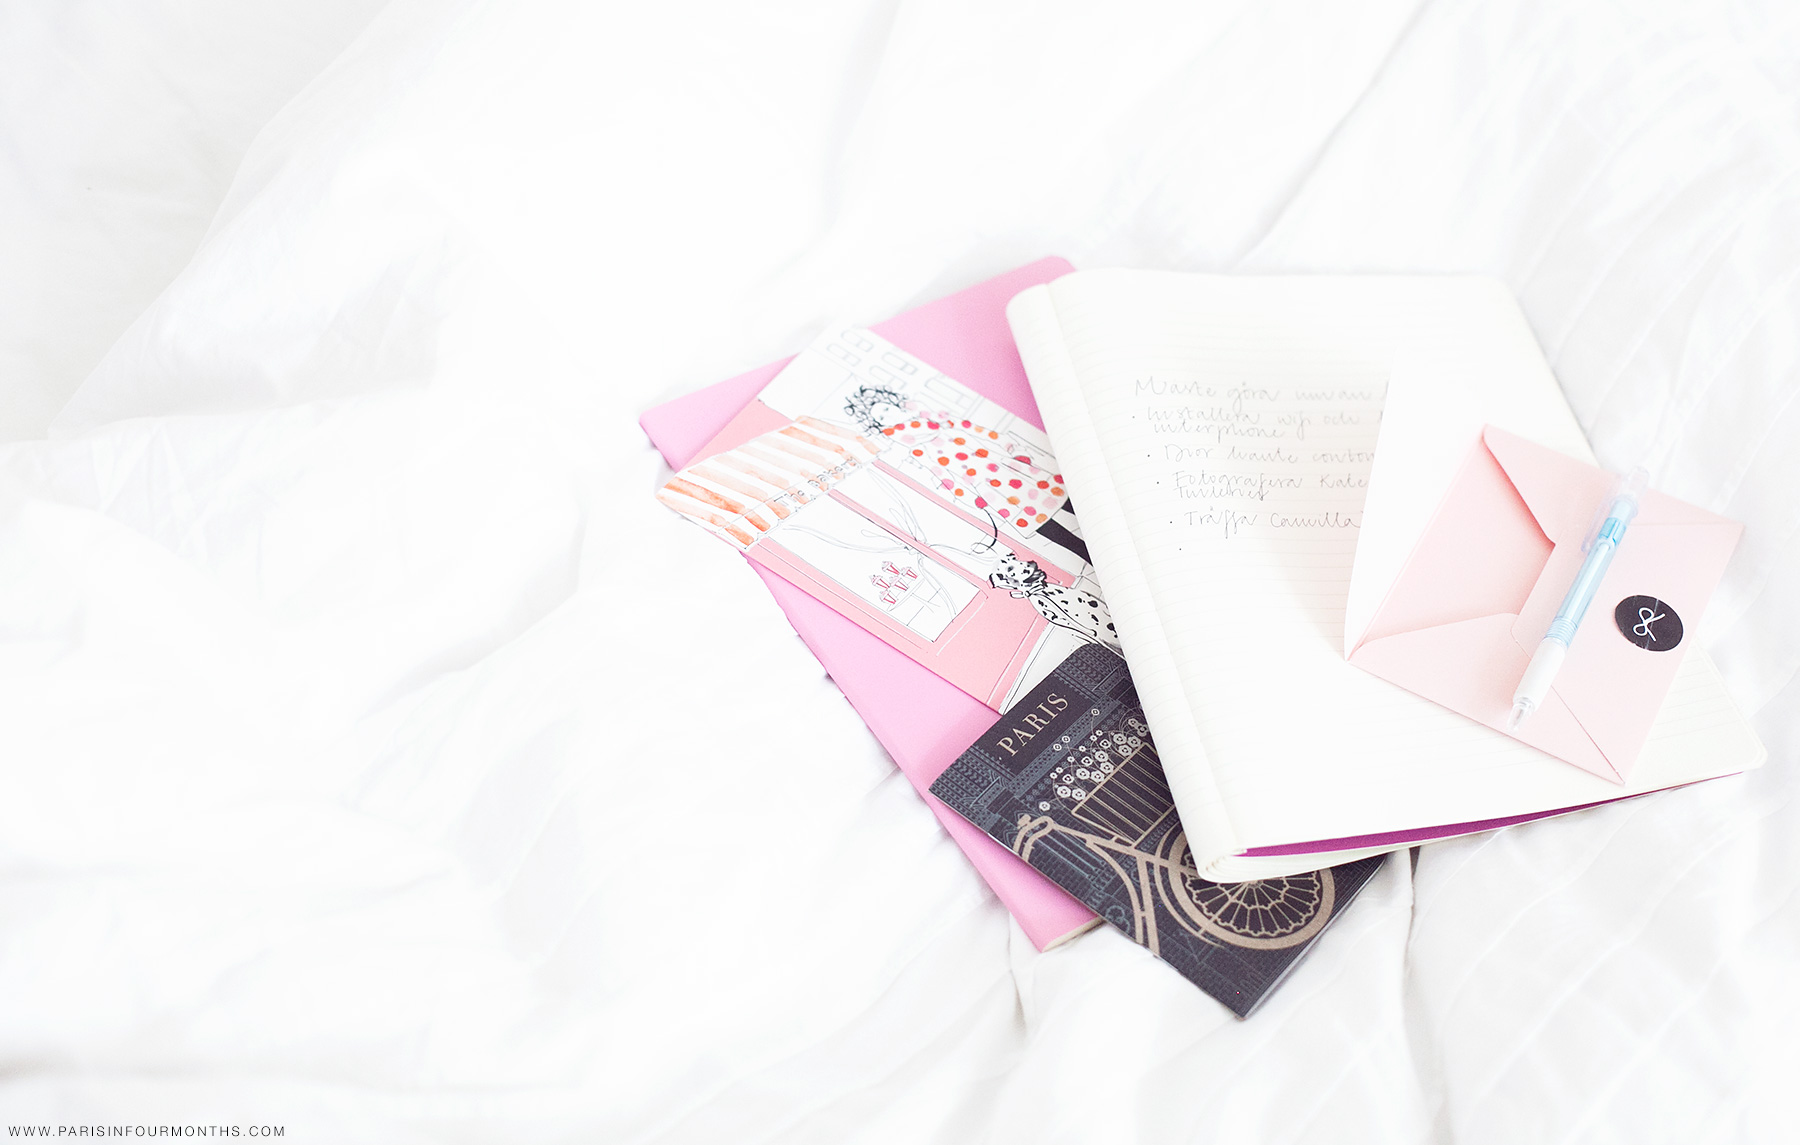 Notes in bed by Carin Olsson (Paris in Four Months)